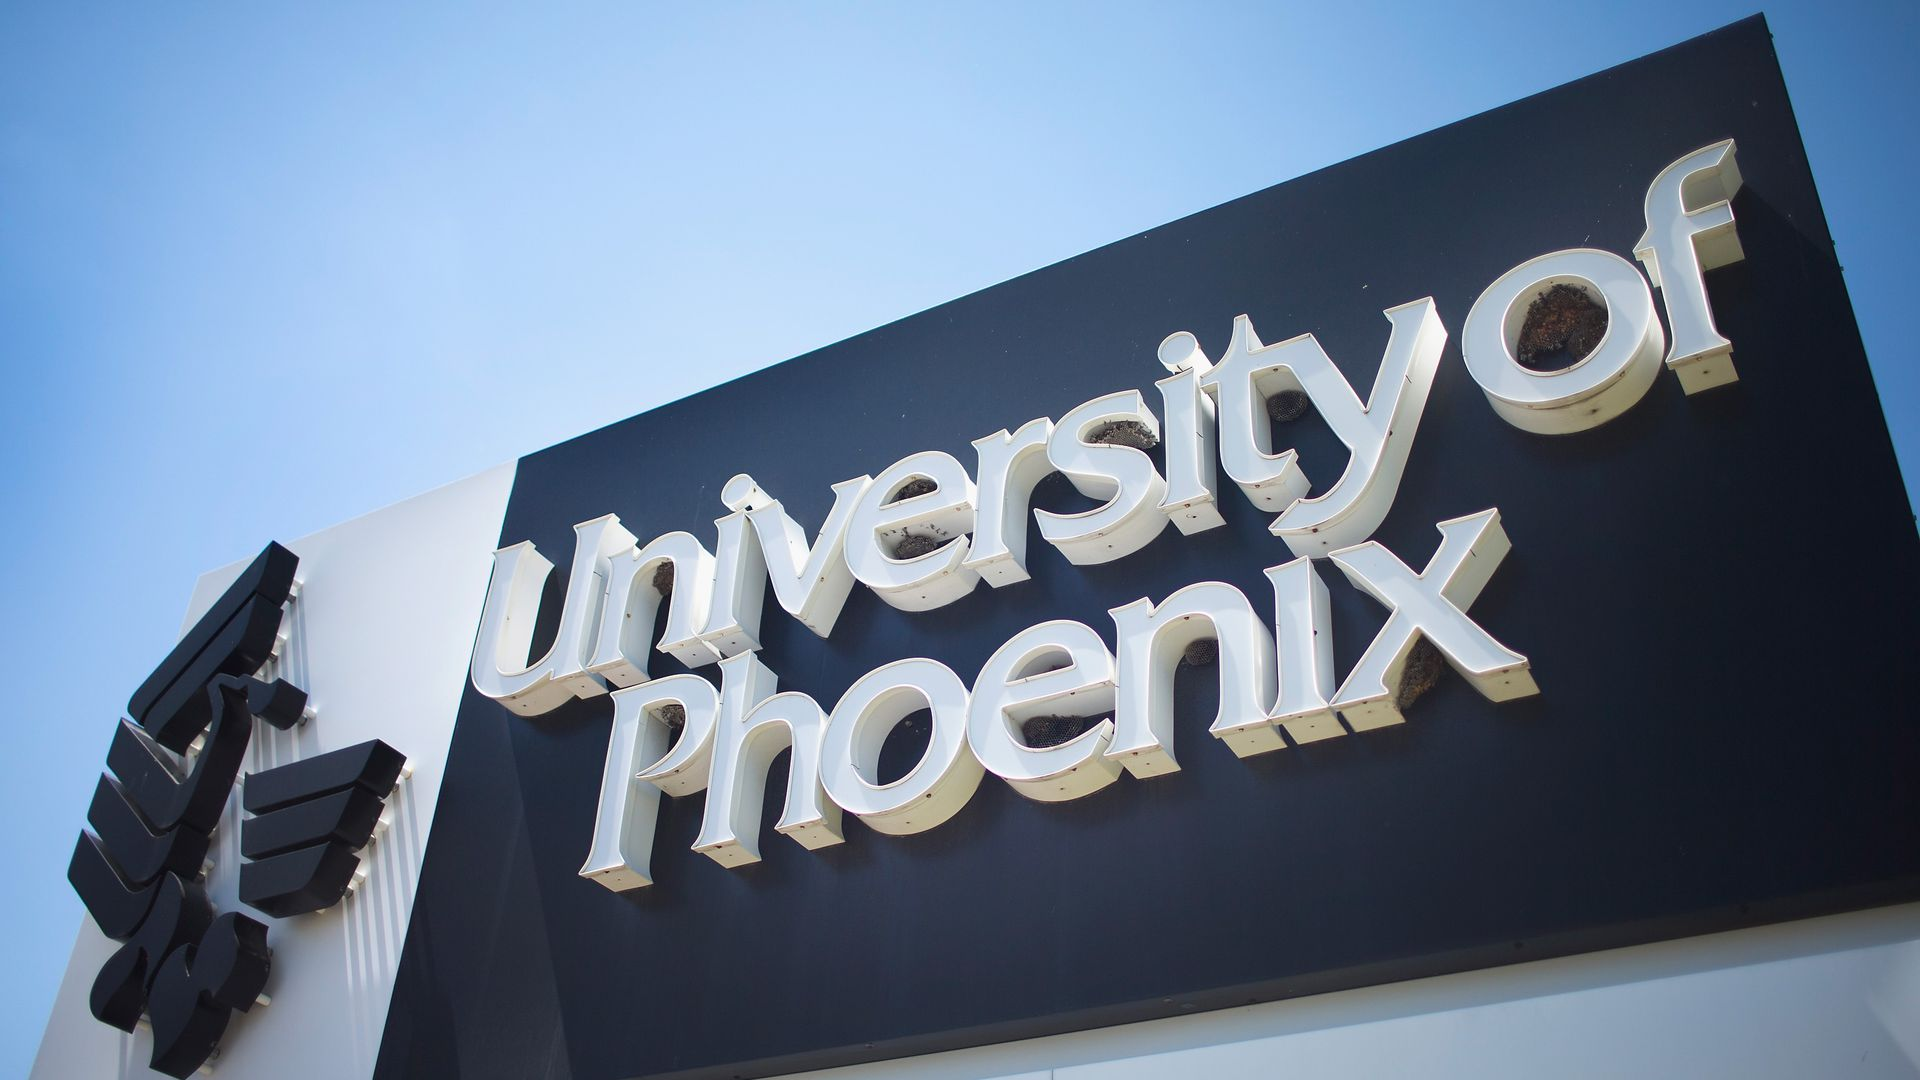 """In this image, a campus sign reads """"University of Phoenix"""""""